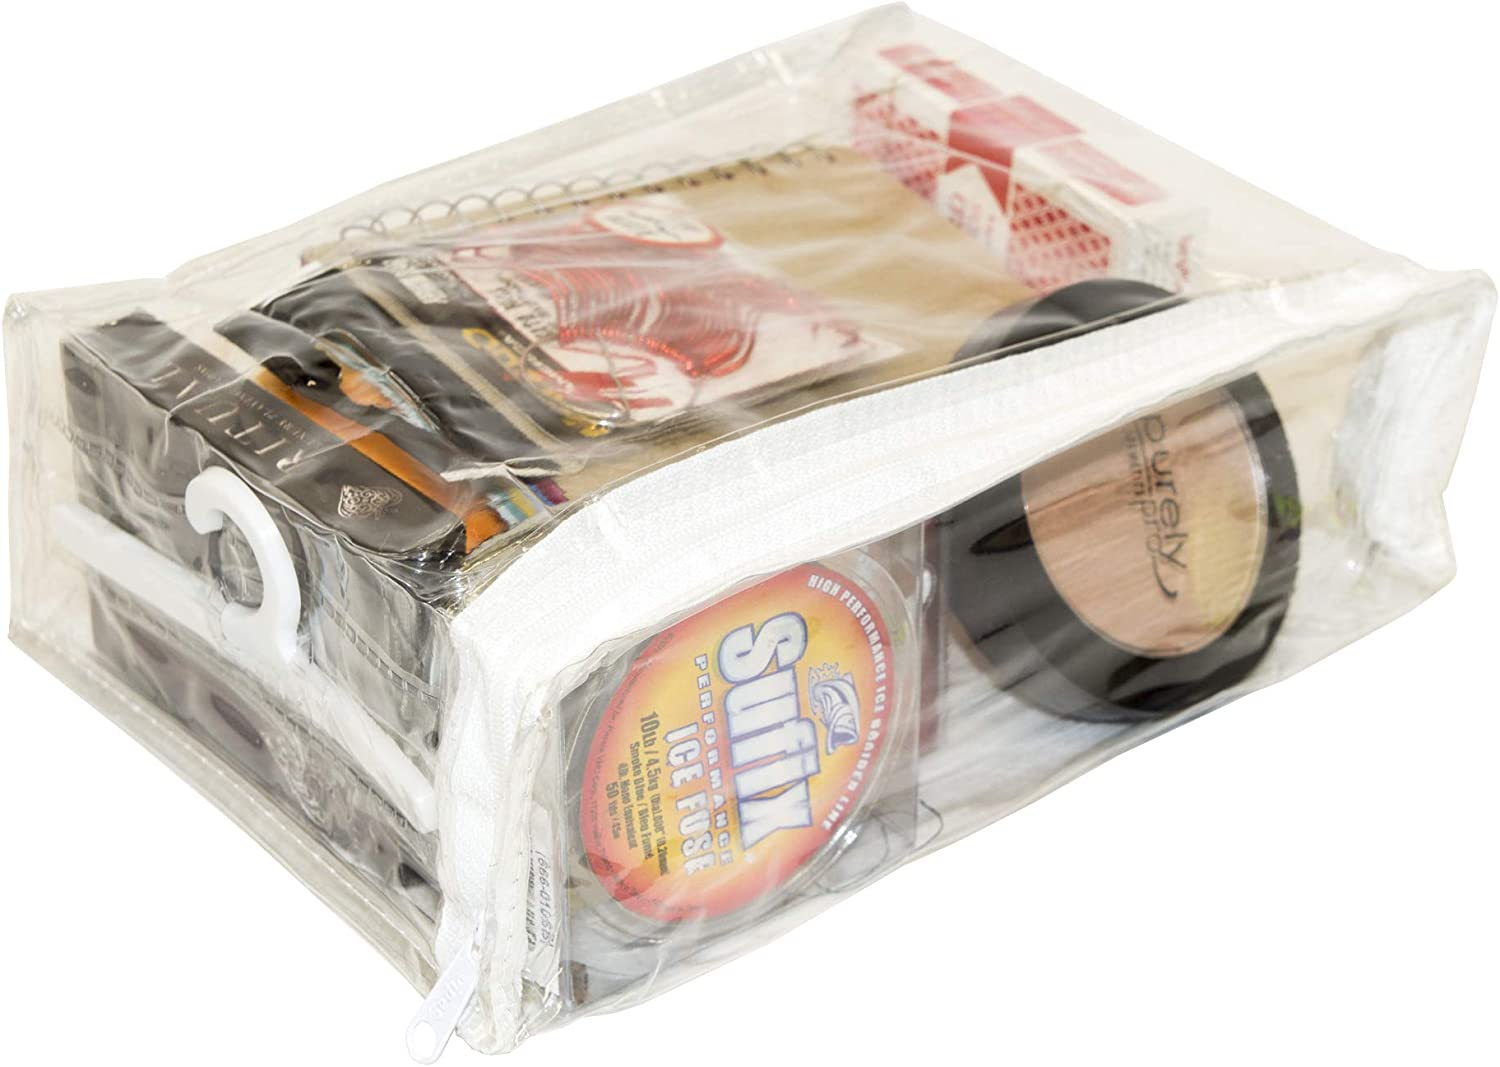 Clear Vinyl Zippered Storage Bags 8 x 6 x 2.5 Inch with Display Hanger 5-Pack